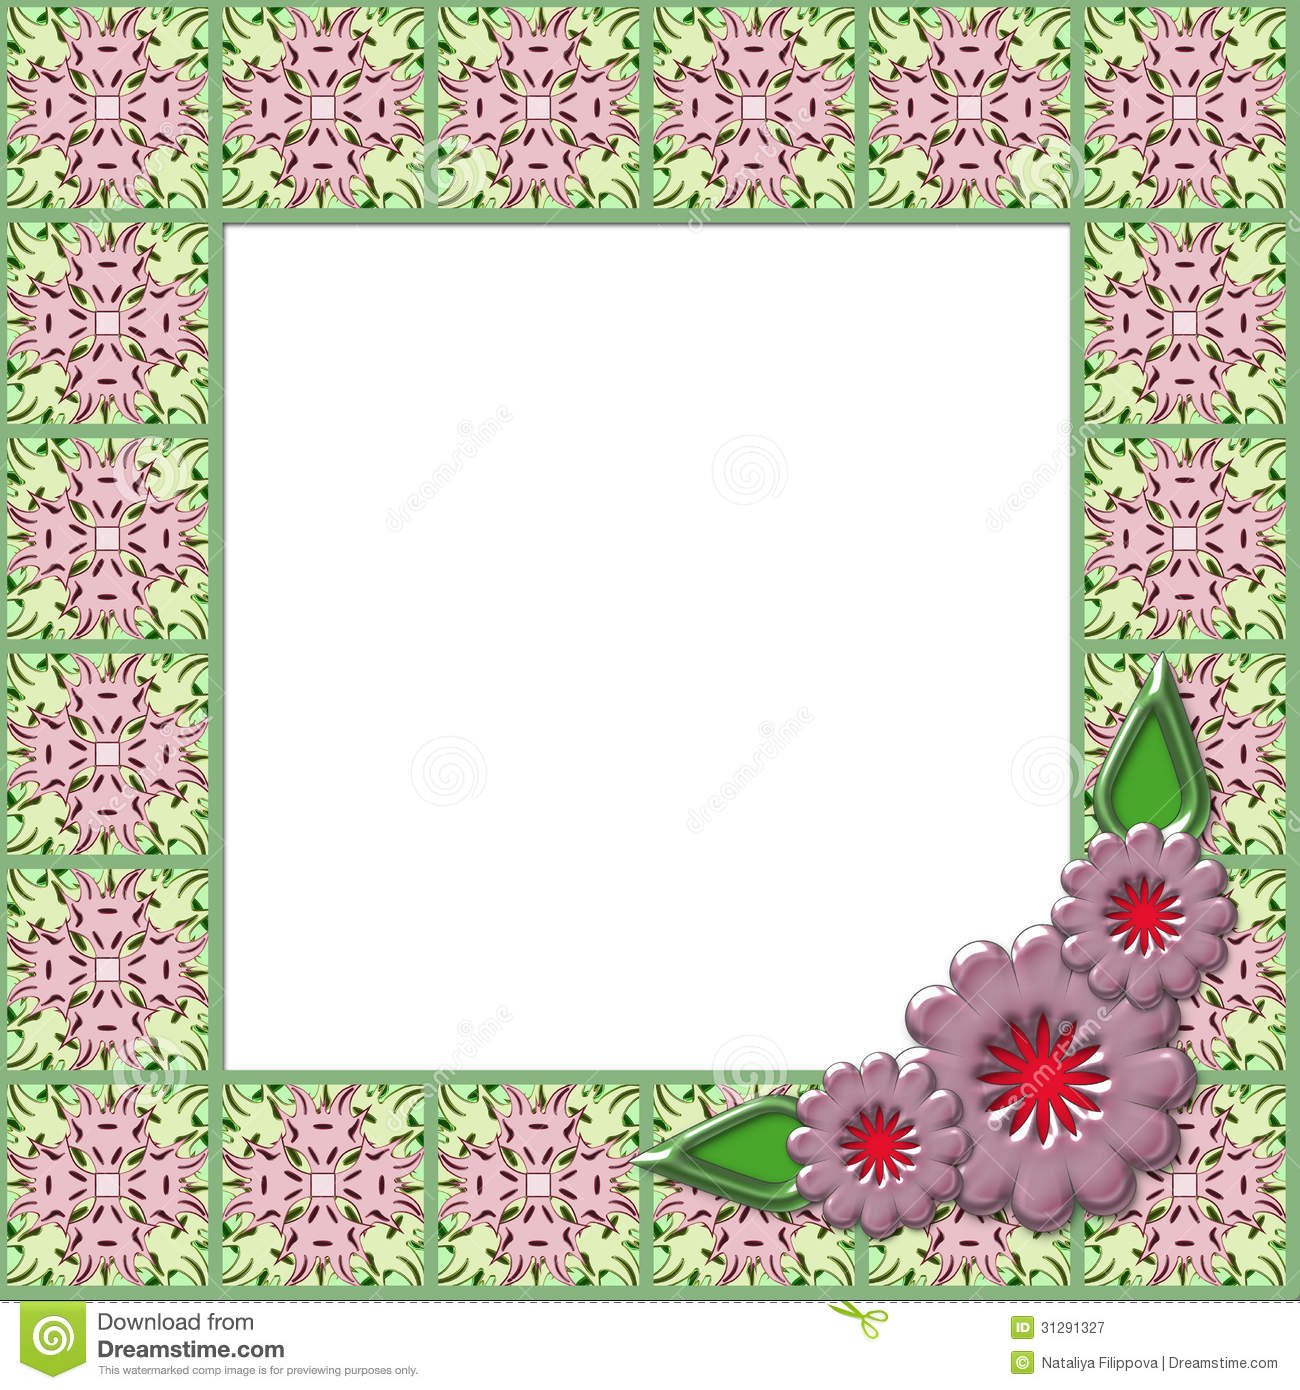 Frame With Flowers Royalty Free Stock Photography - Image: 31291327